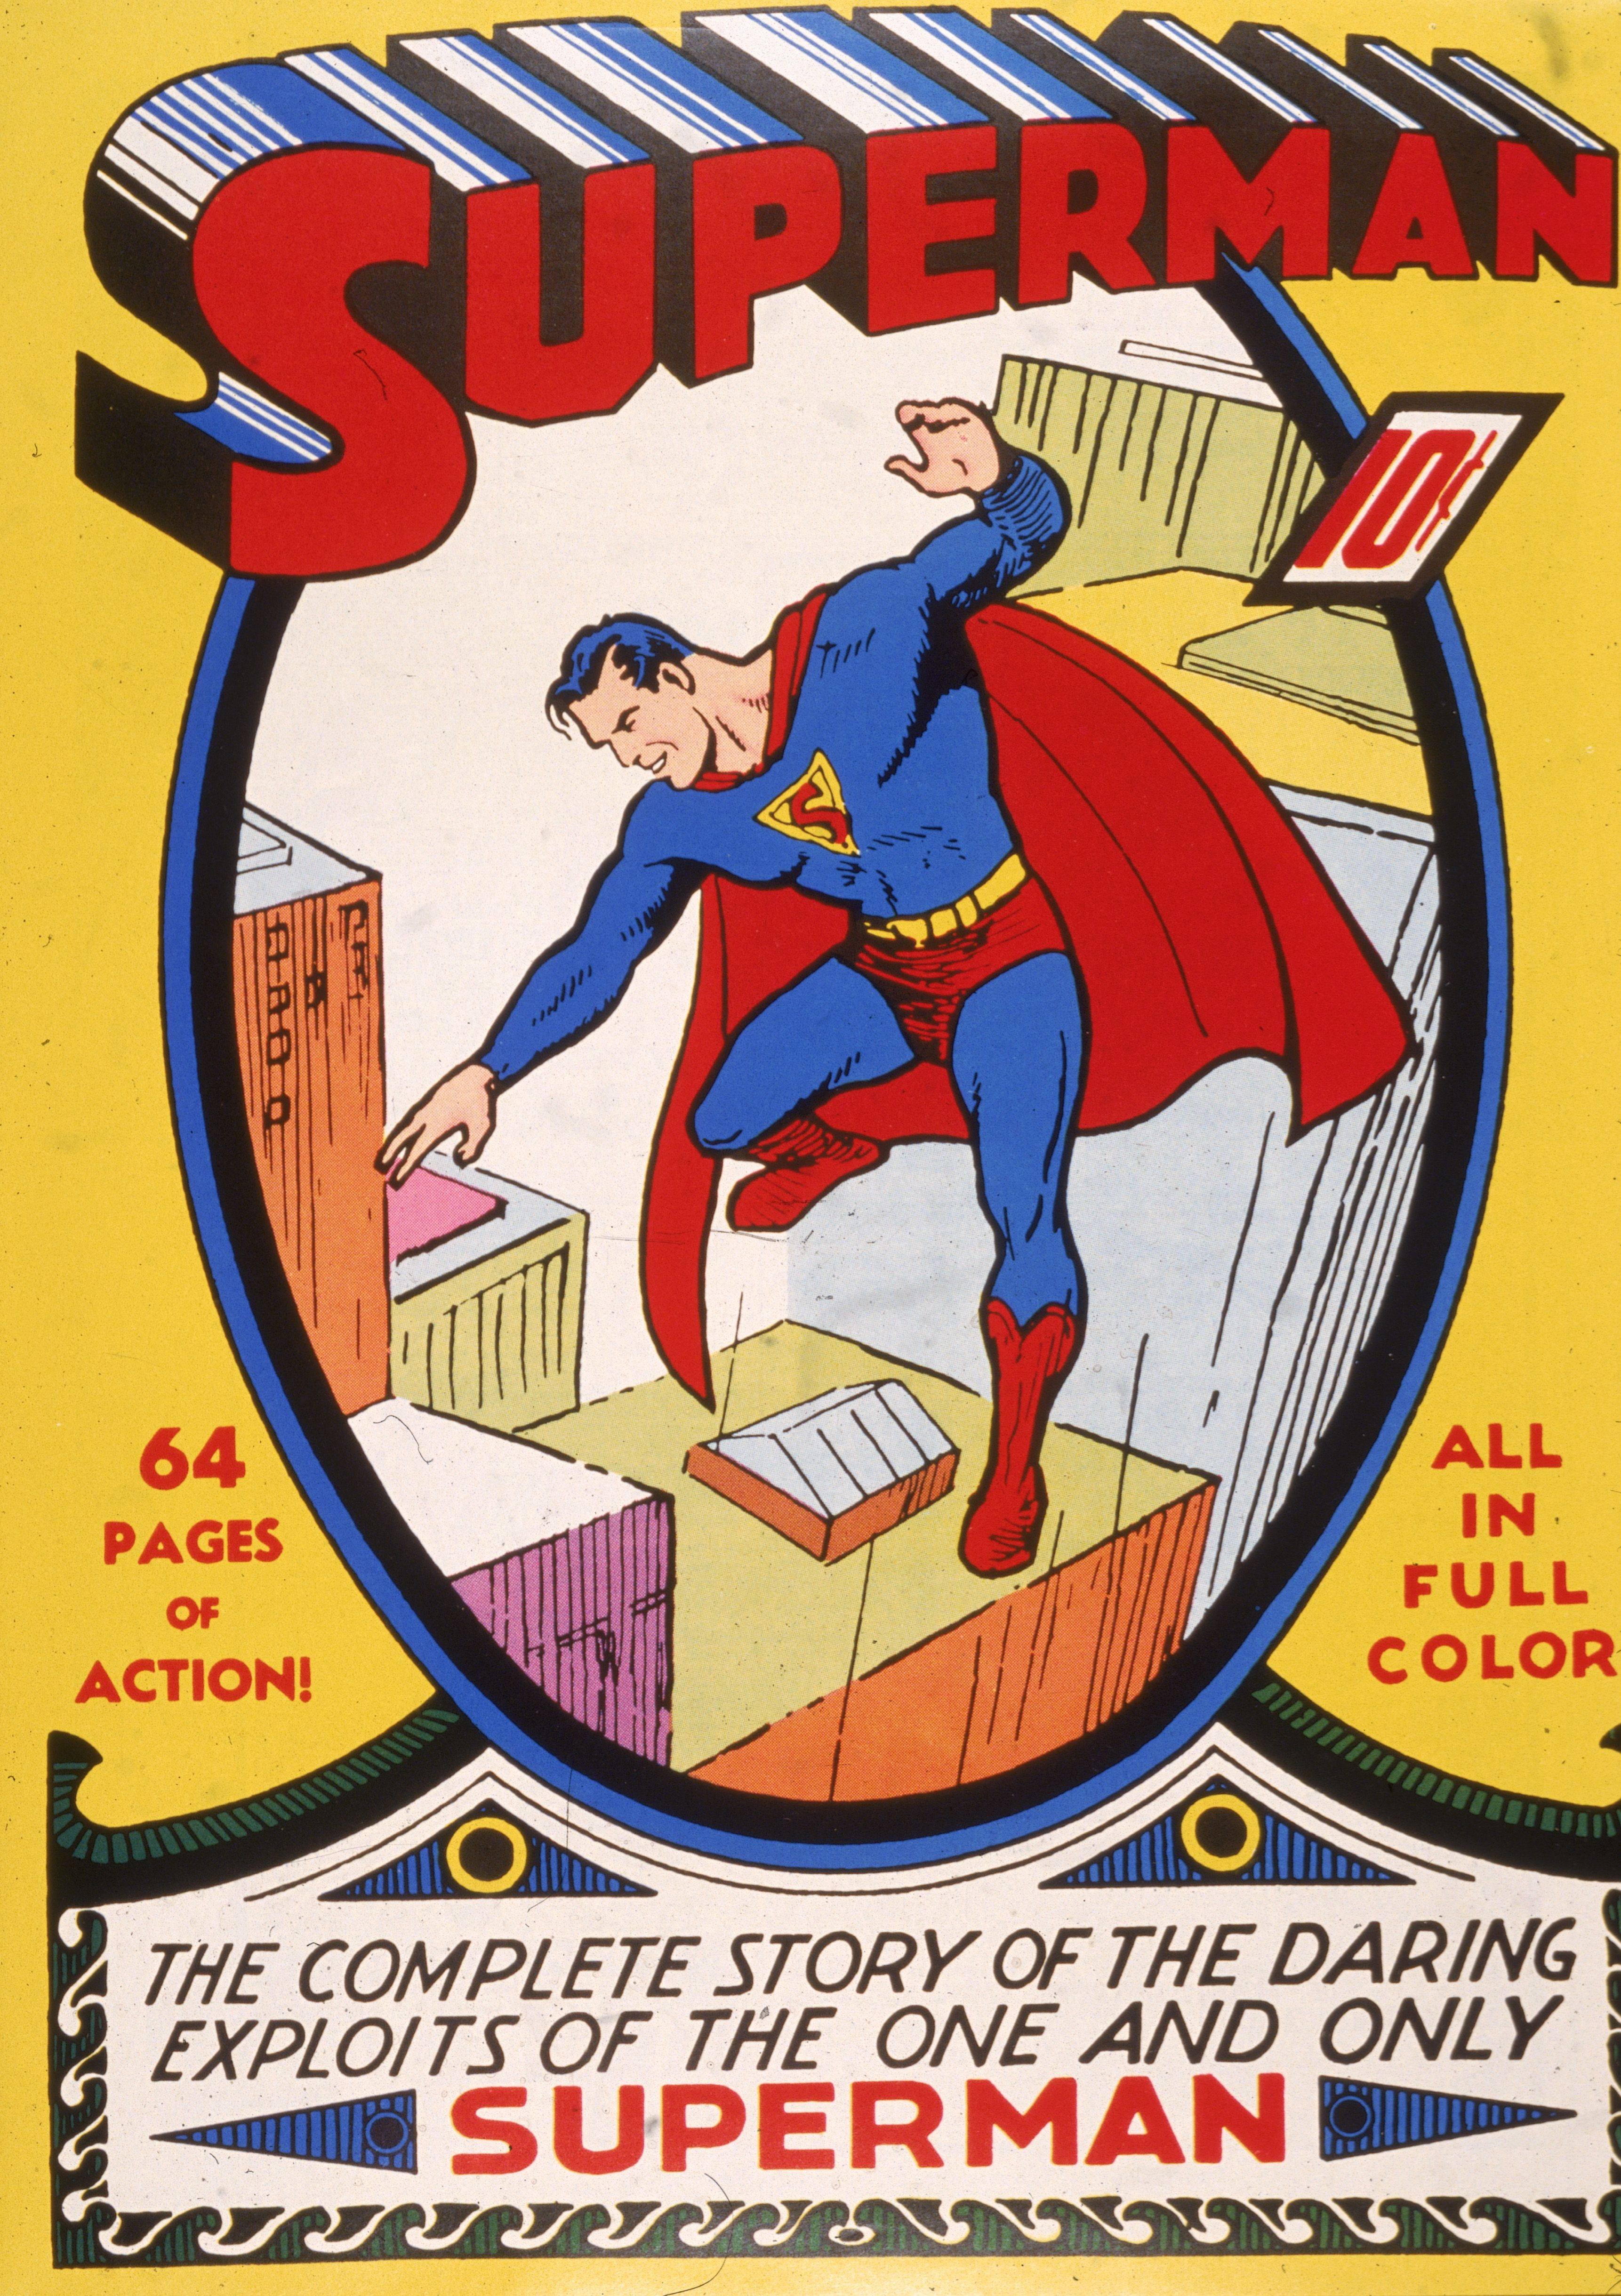 Old Comic Book Cover Texture : Top comic book covers cover art for the 'superman